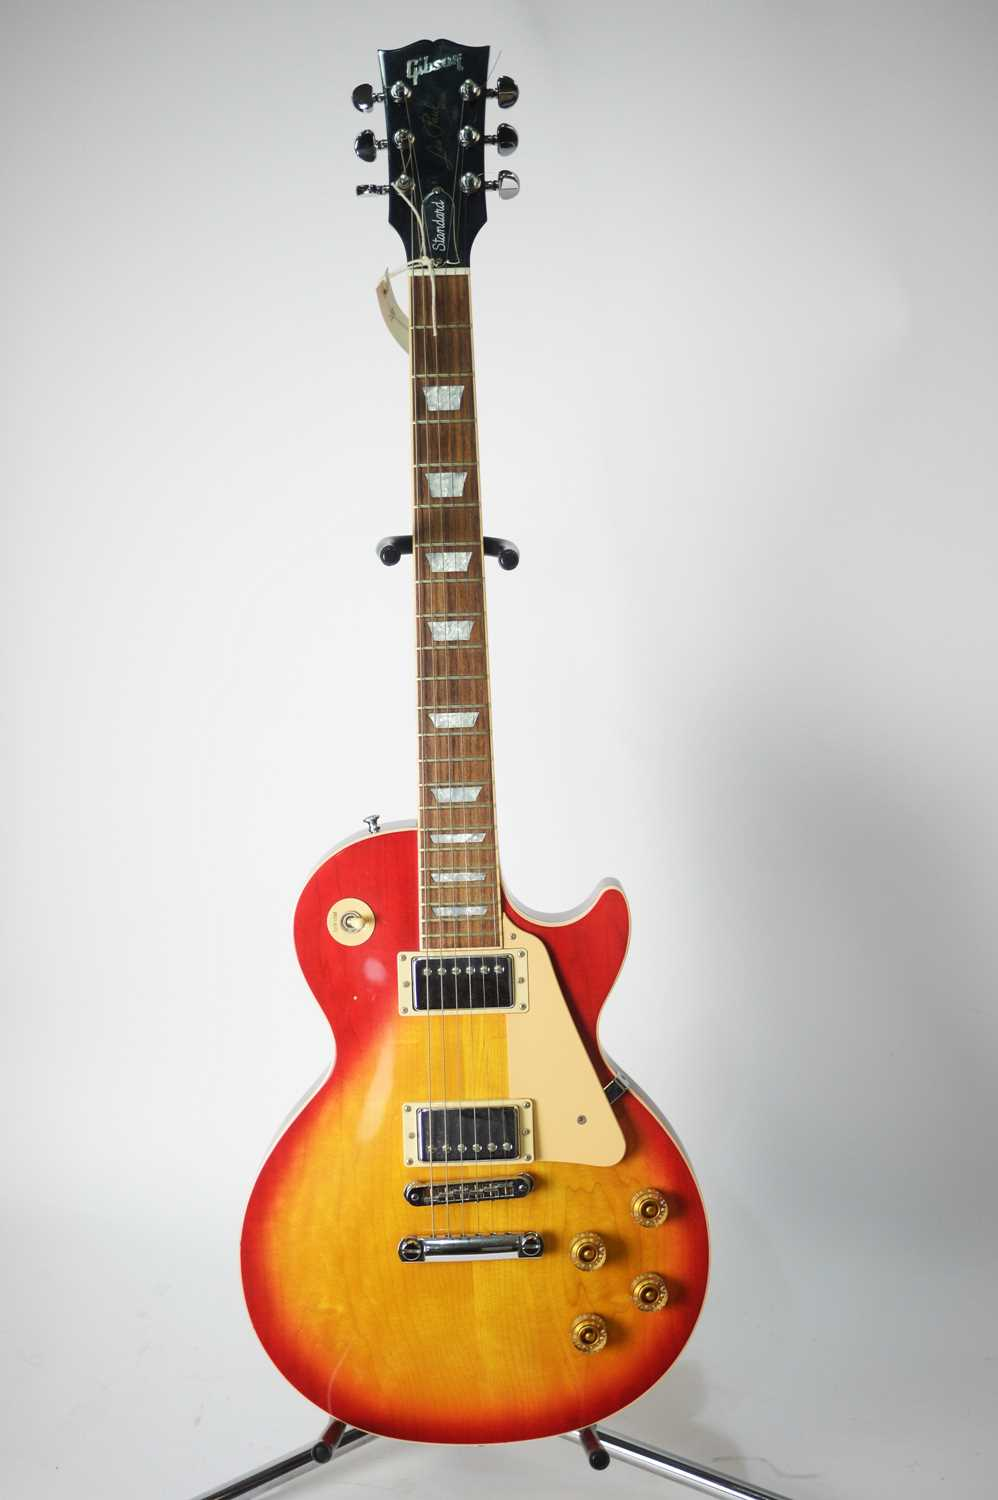 Lot 757 - Gibson Les Paul Standard Guitar